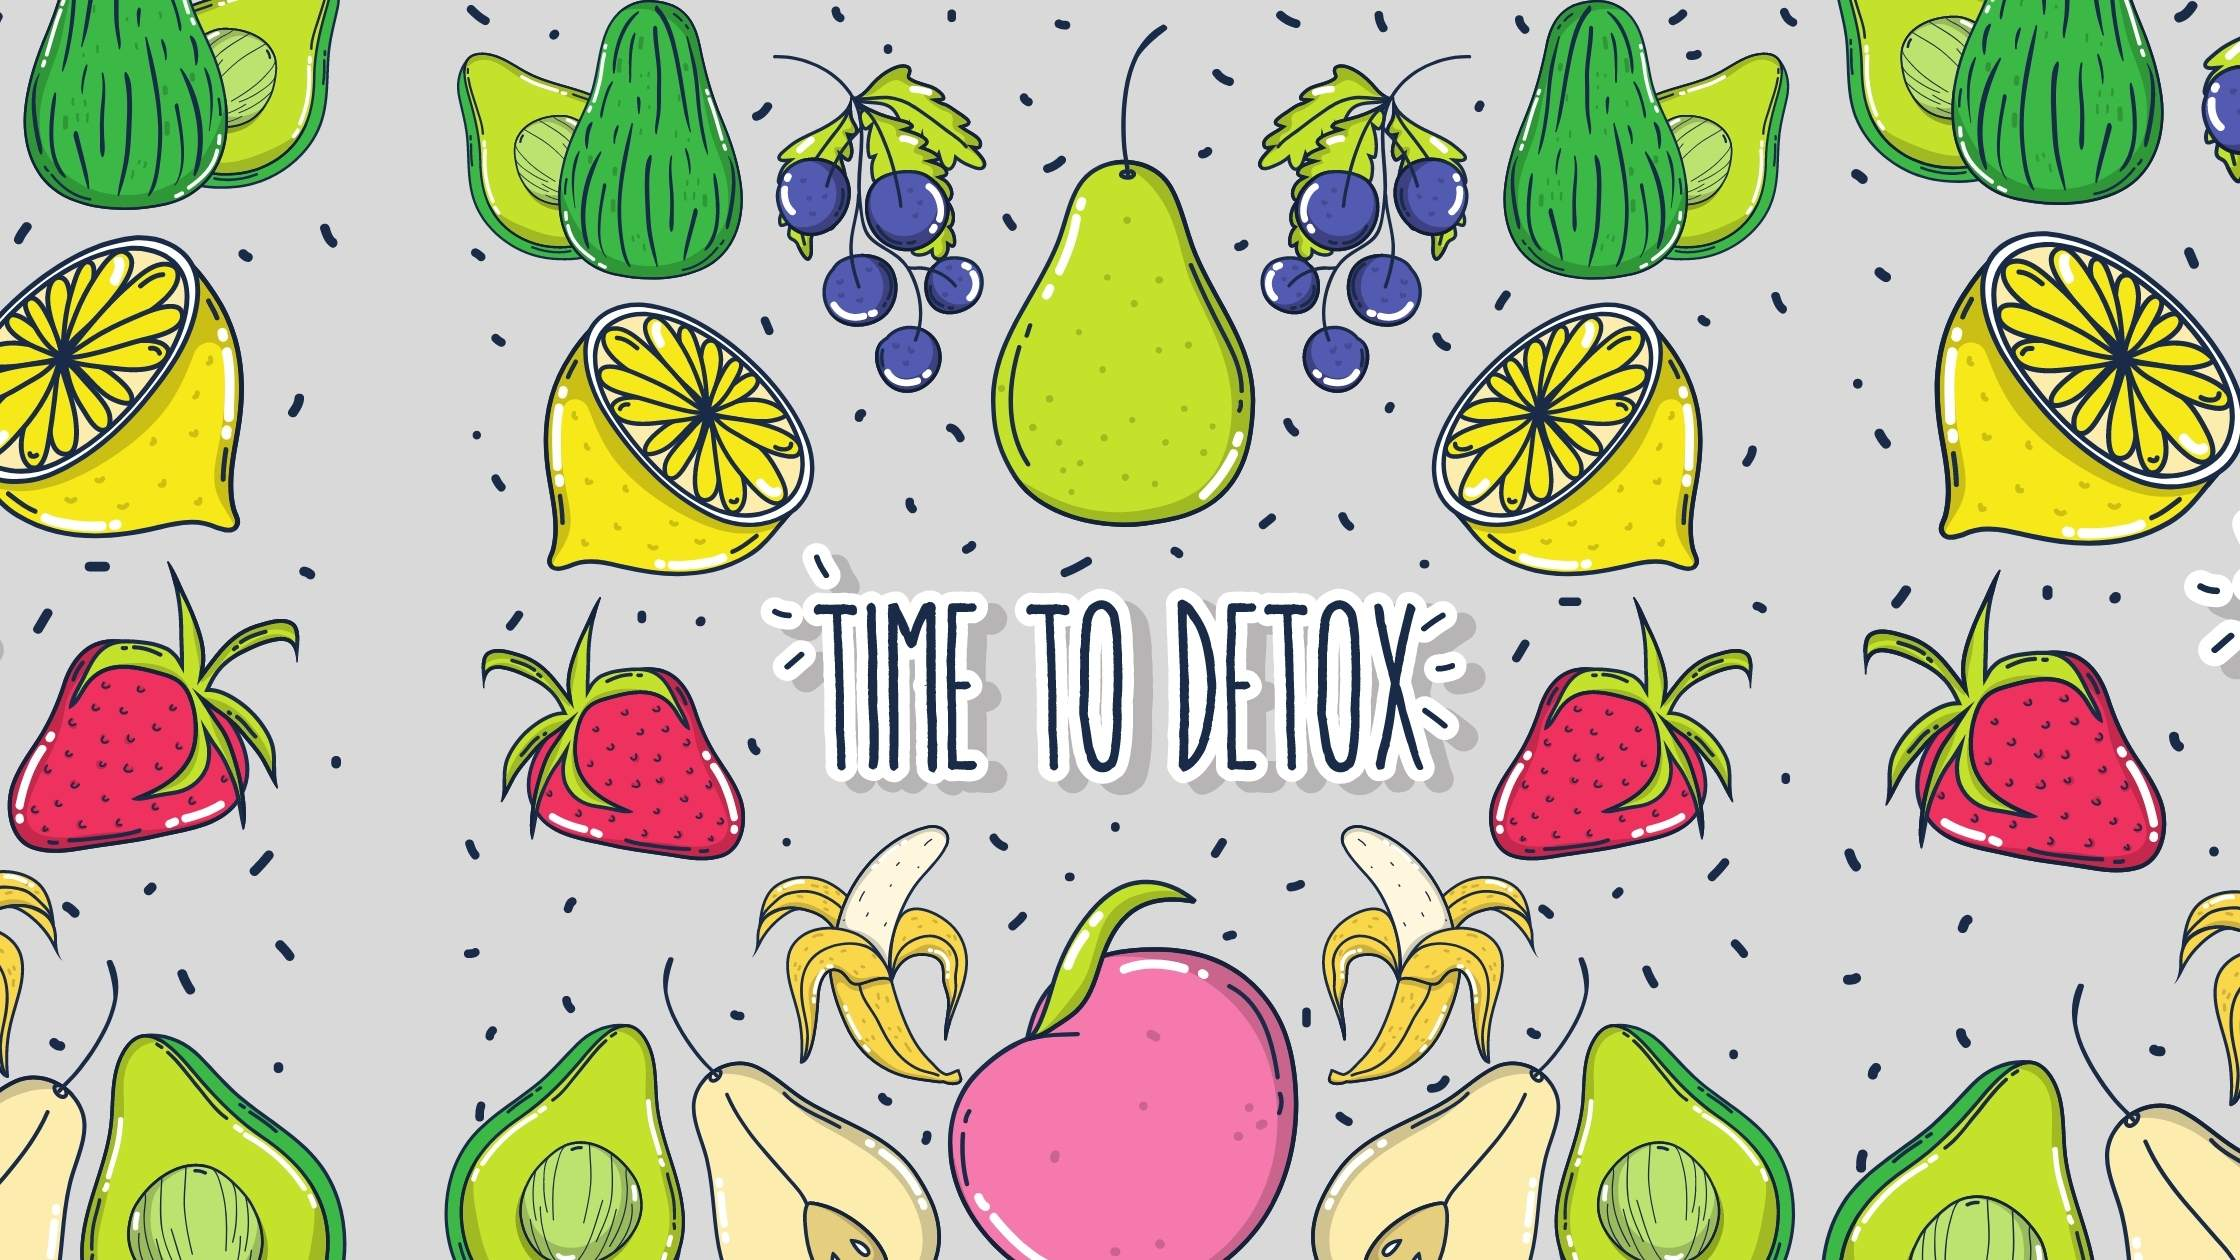 how to detox your body naturally